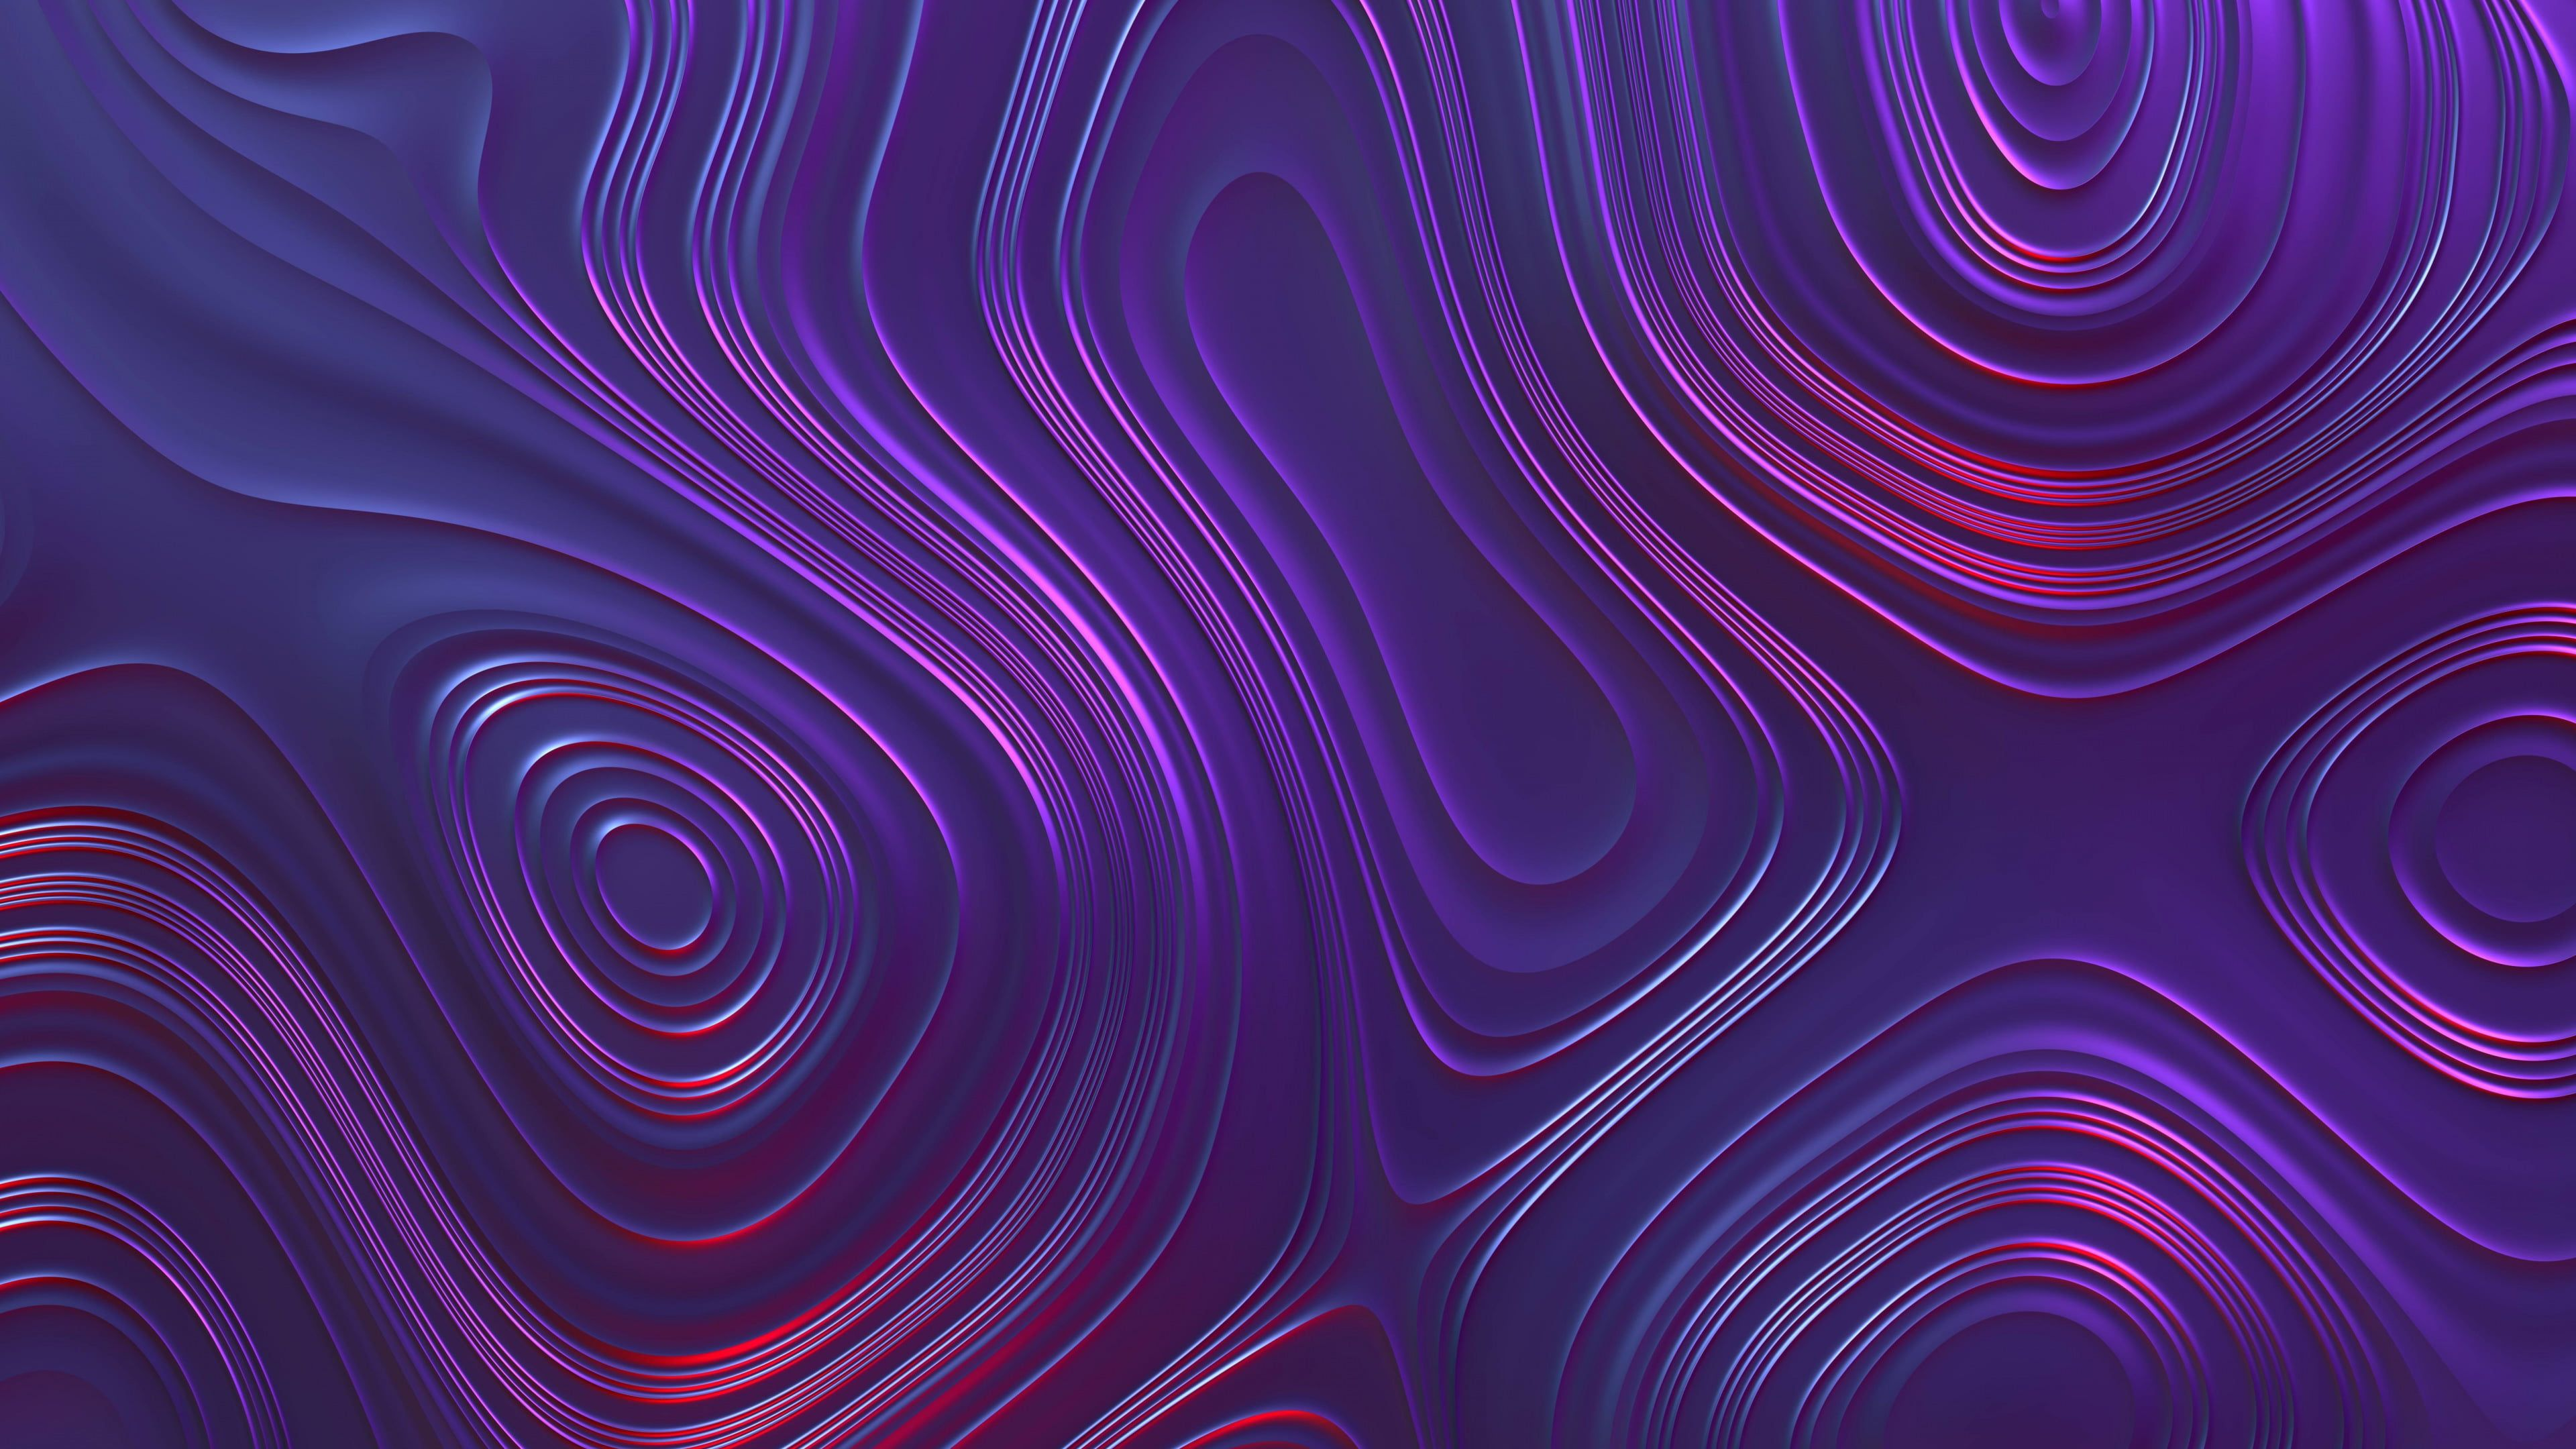 Purple And Red Abstract Painting Abstract Wavy Lines Swirl Swirls Render Shapes Digital Art 4k Wallpape Red Abstract Painting Abstract Abstract Painting